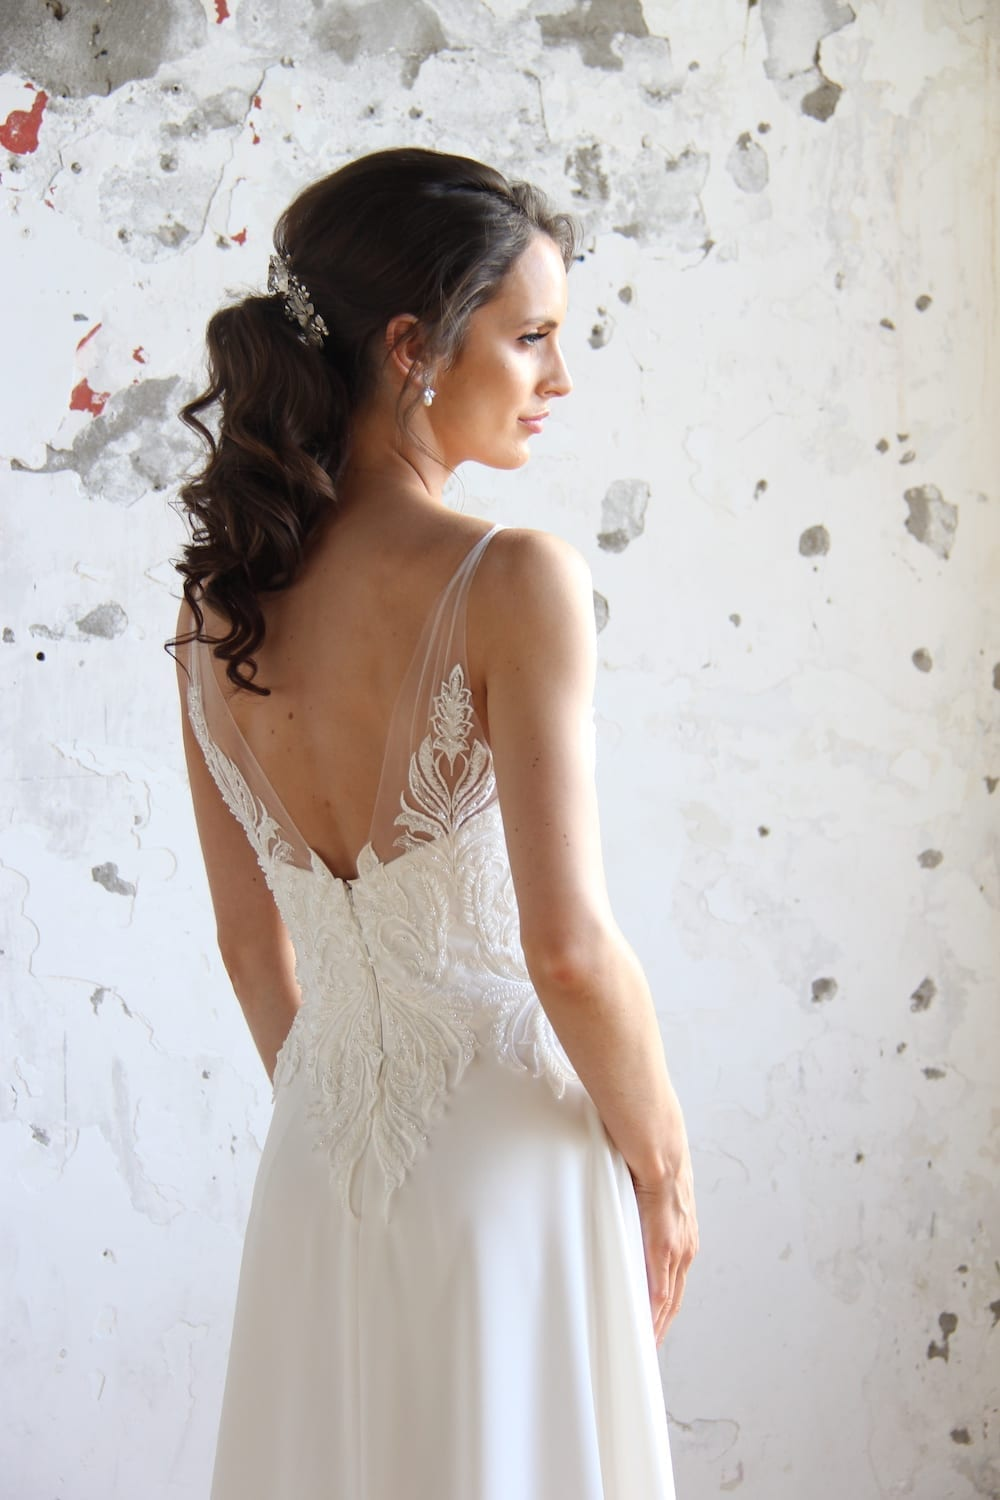 Female model wearing Vinka Design Modern Muse Wedding Dress. In chic warehouse the back detail of a gown with beaded lace and tulle bodice and bridal crepe skirt with train.